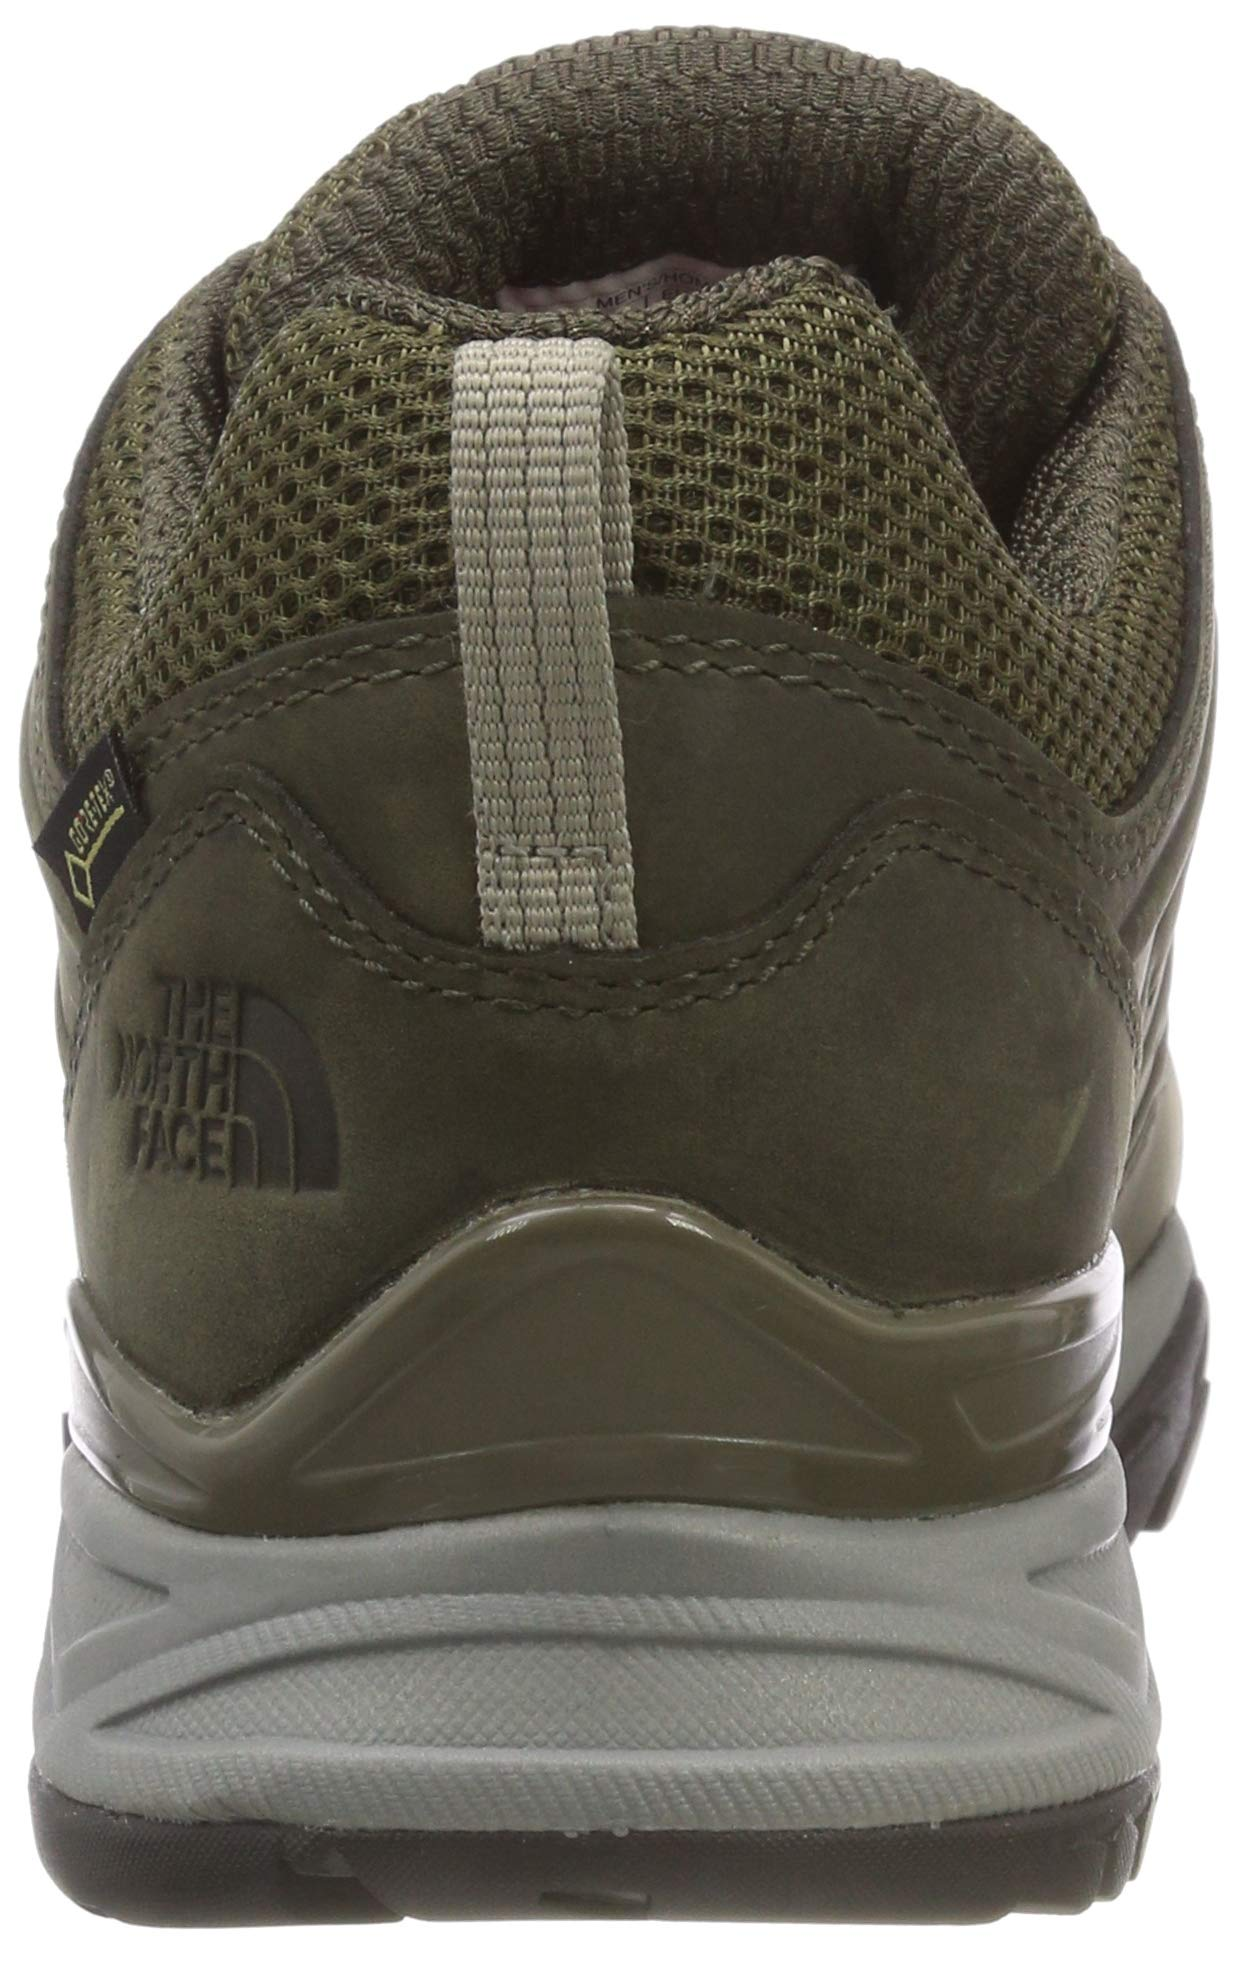 714P6C0fYoL - THE NORTH FACE Men's Hedgehog Ii GTX Low Rise Hiking Boots